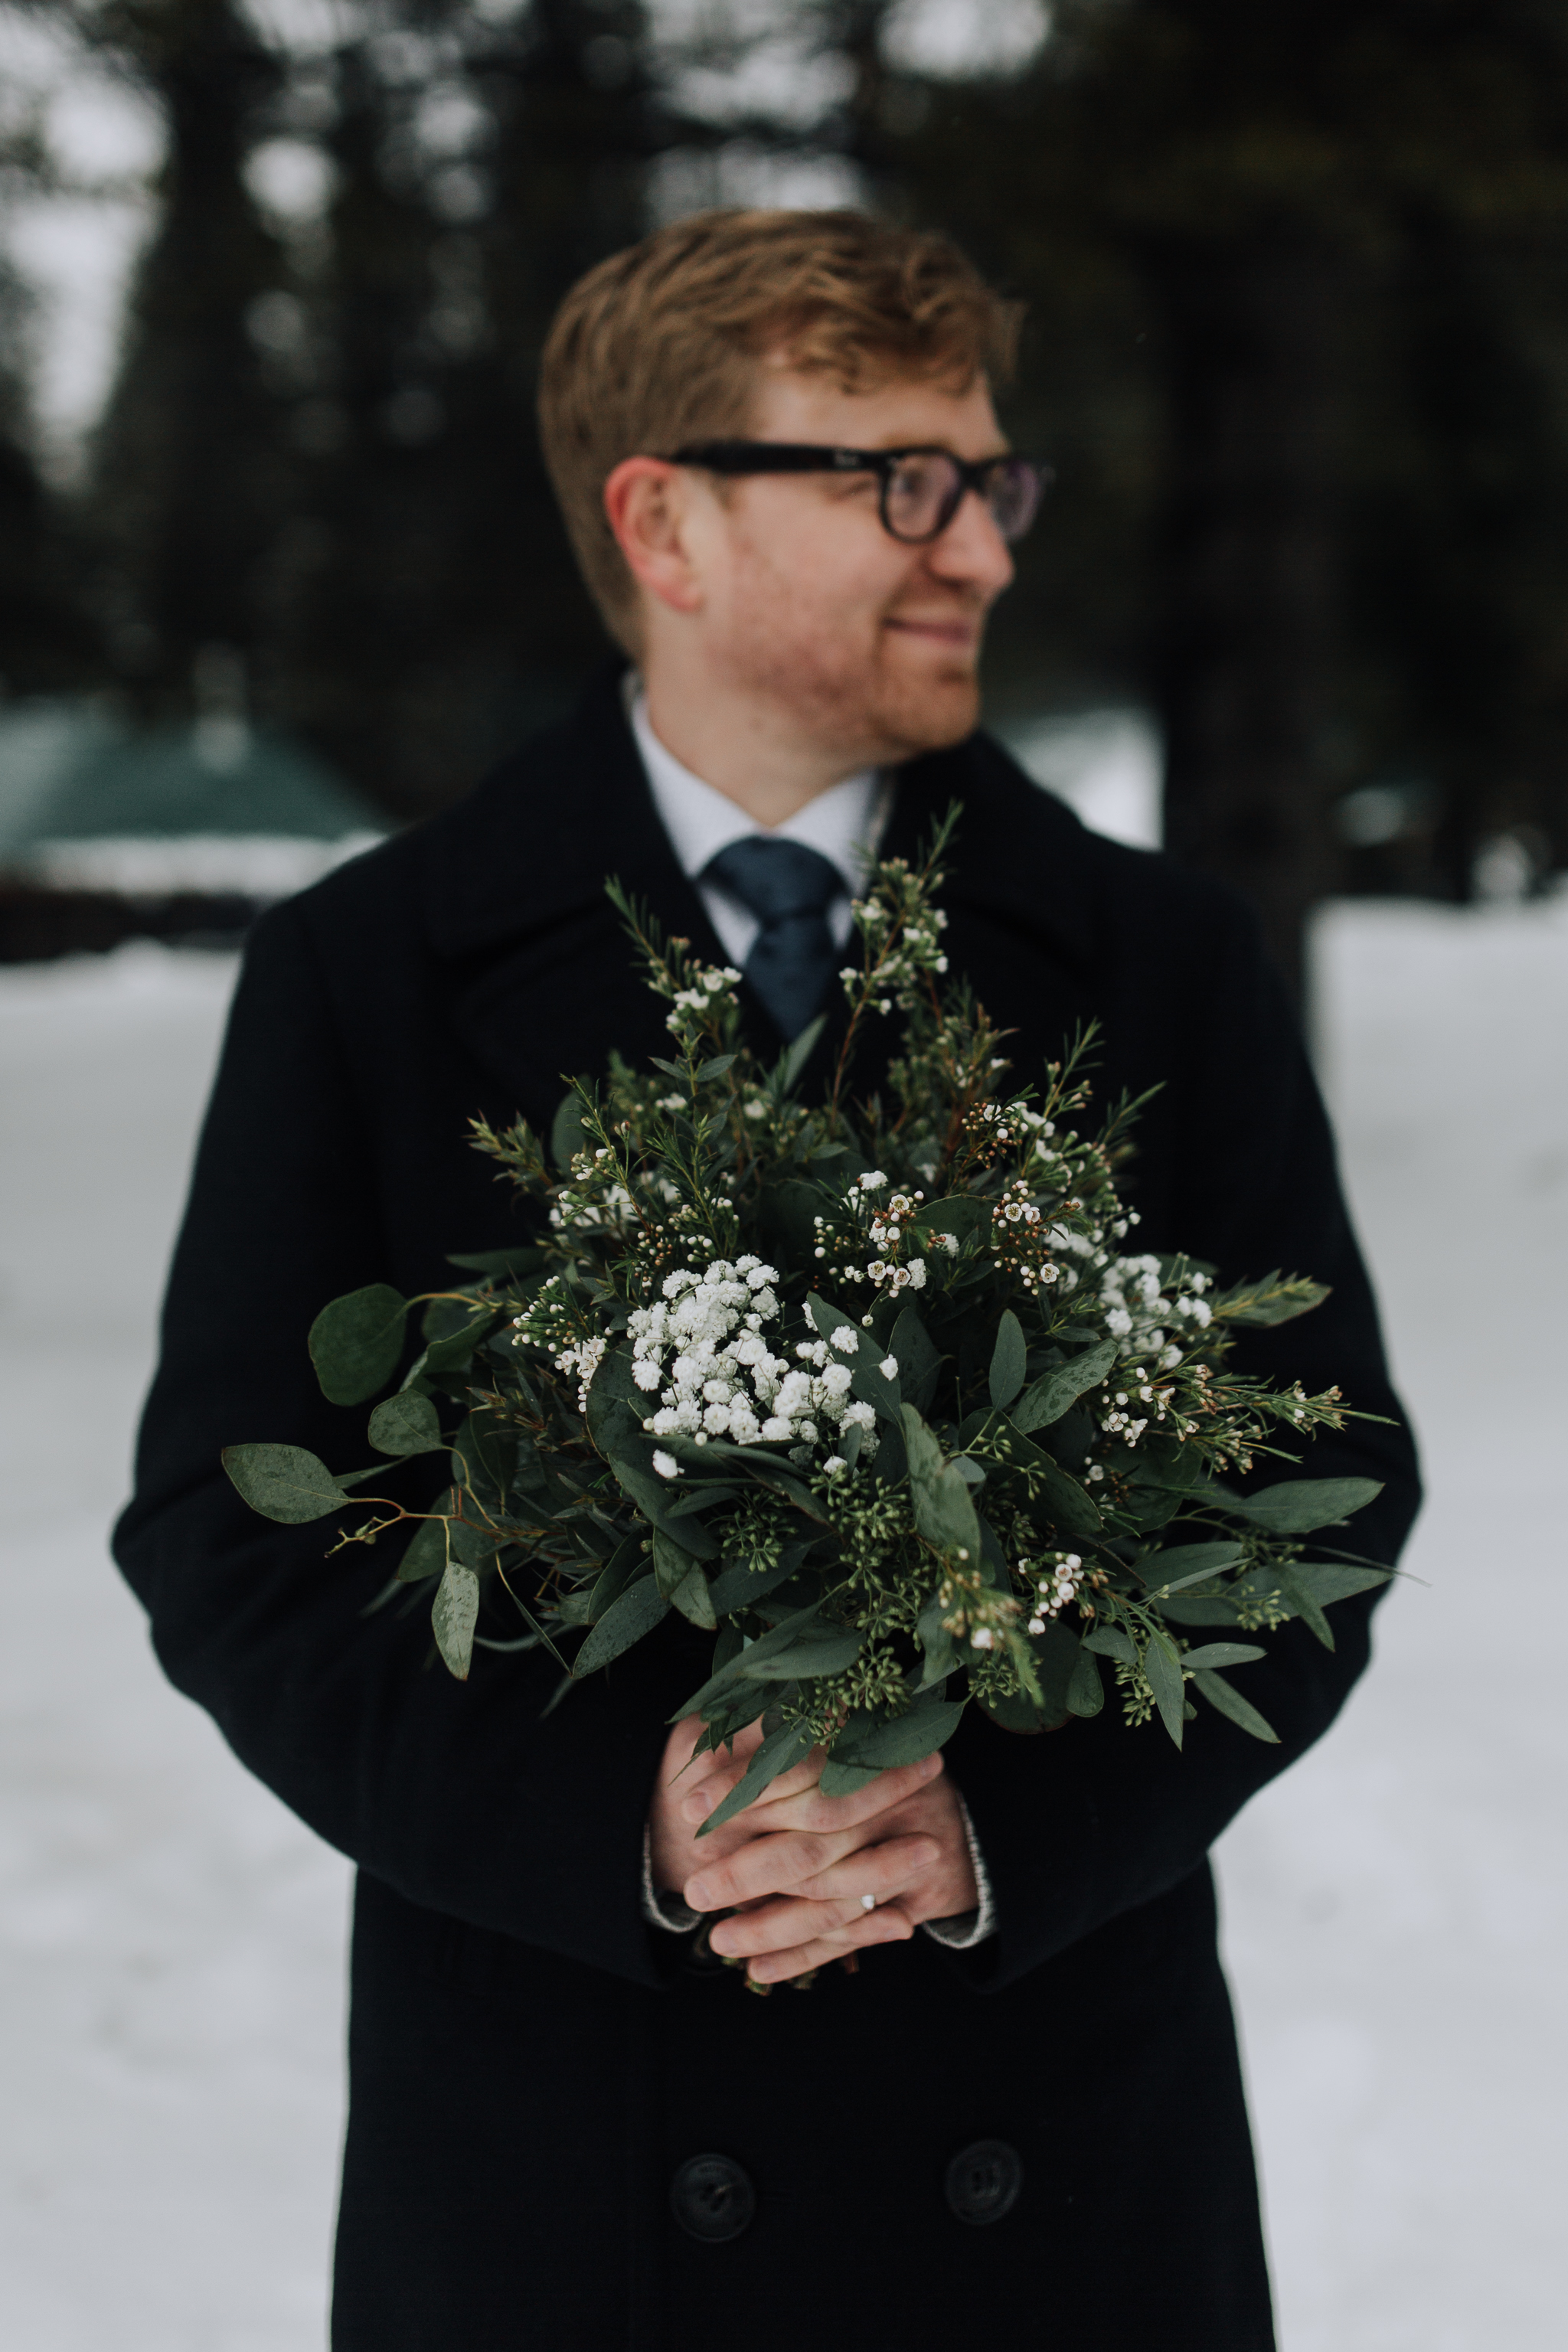 Groom holding bouquet of green florals in snow after elopement at Emerald Lake Lodge